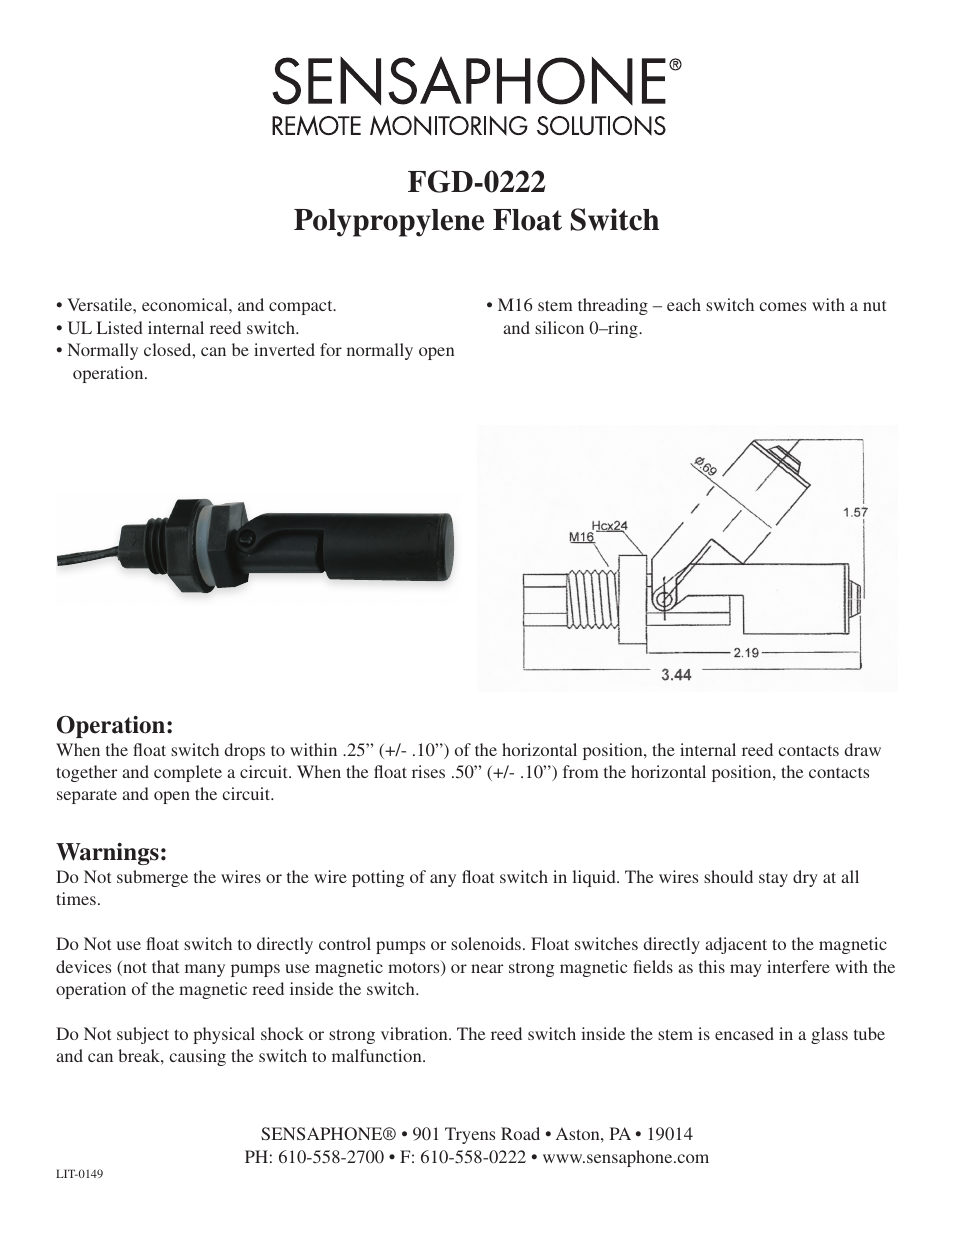 Sensaphone Fgd 0222 Polypropylene Float Switch User Manual 1 Page Magnetic Reed Wiring Diagram